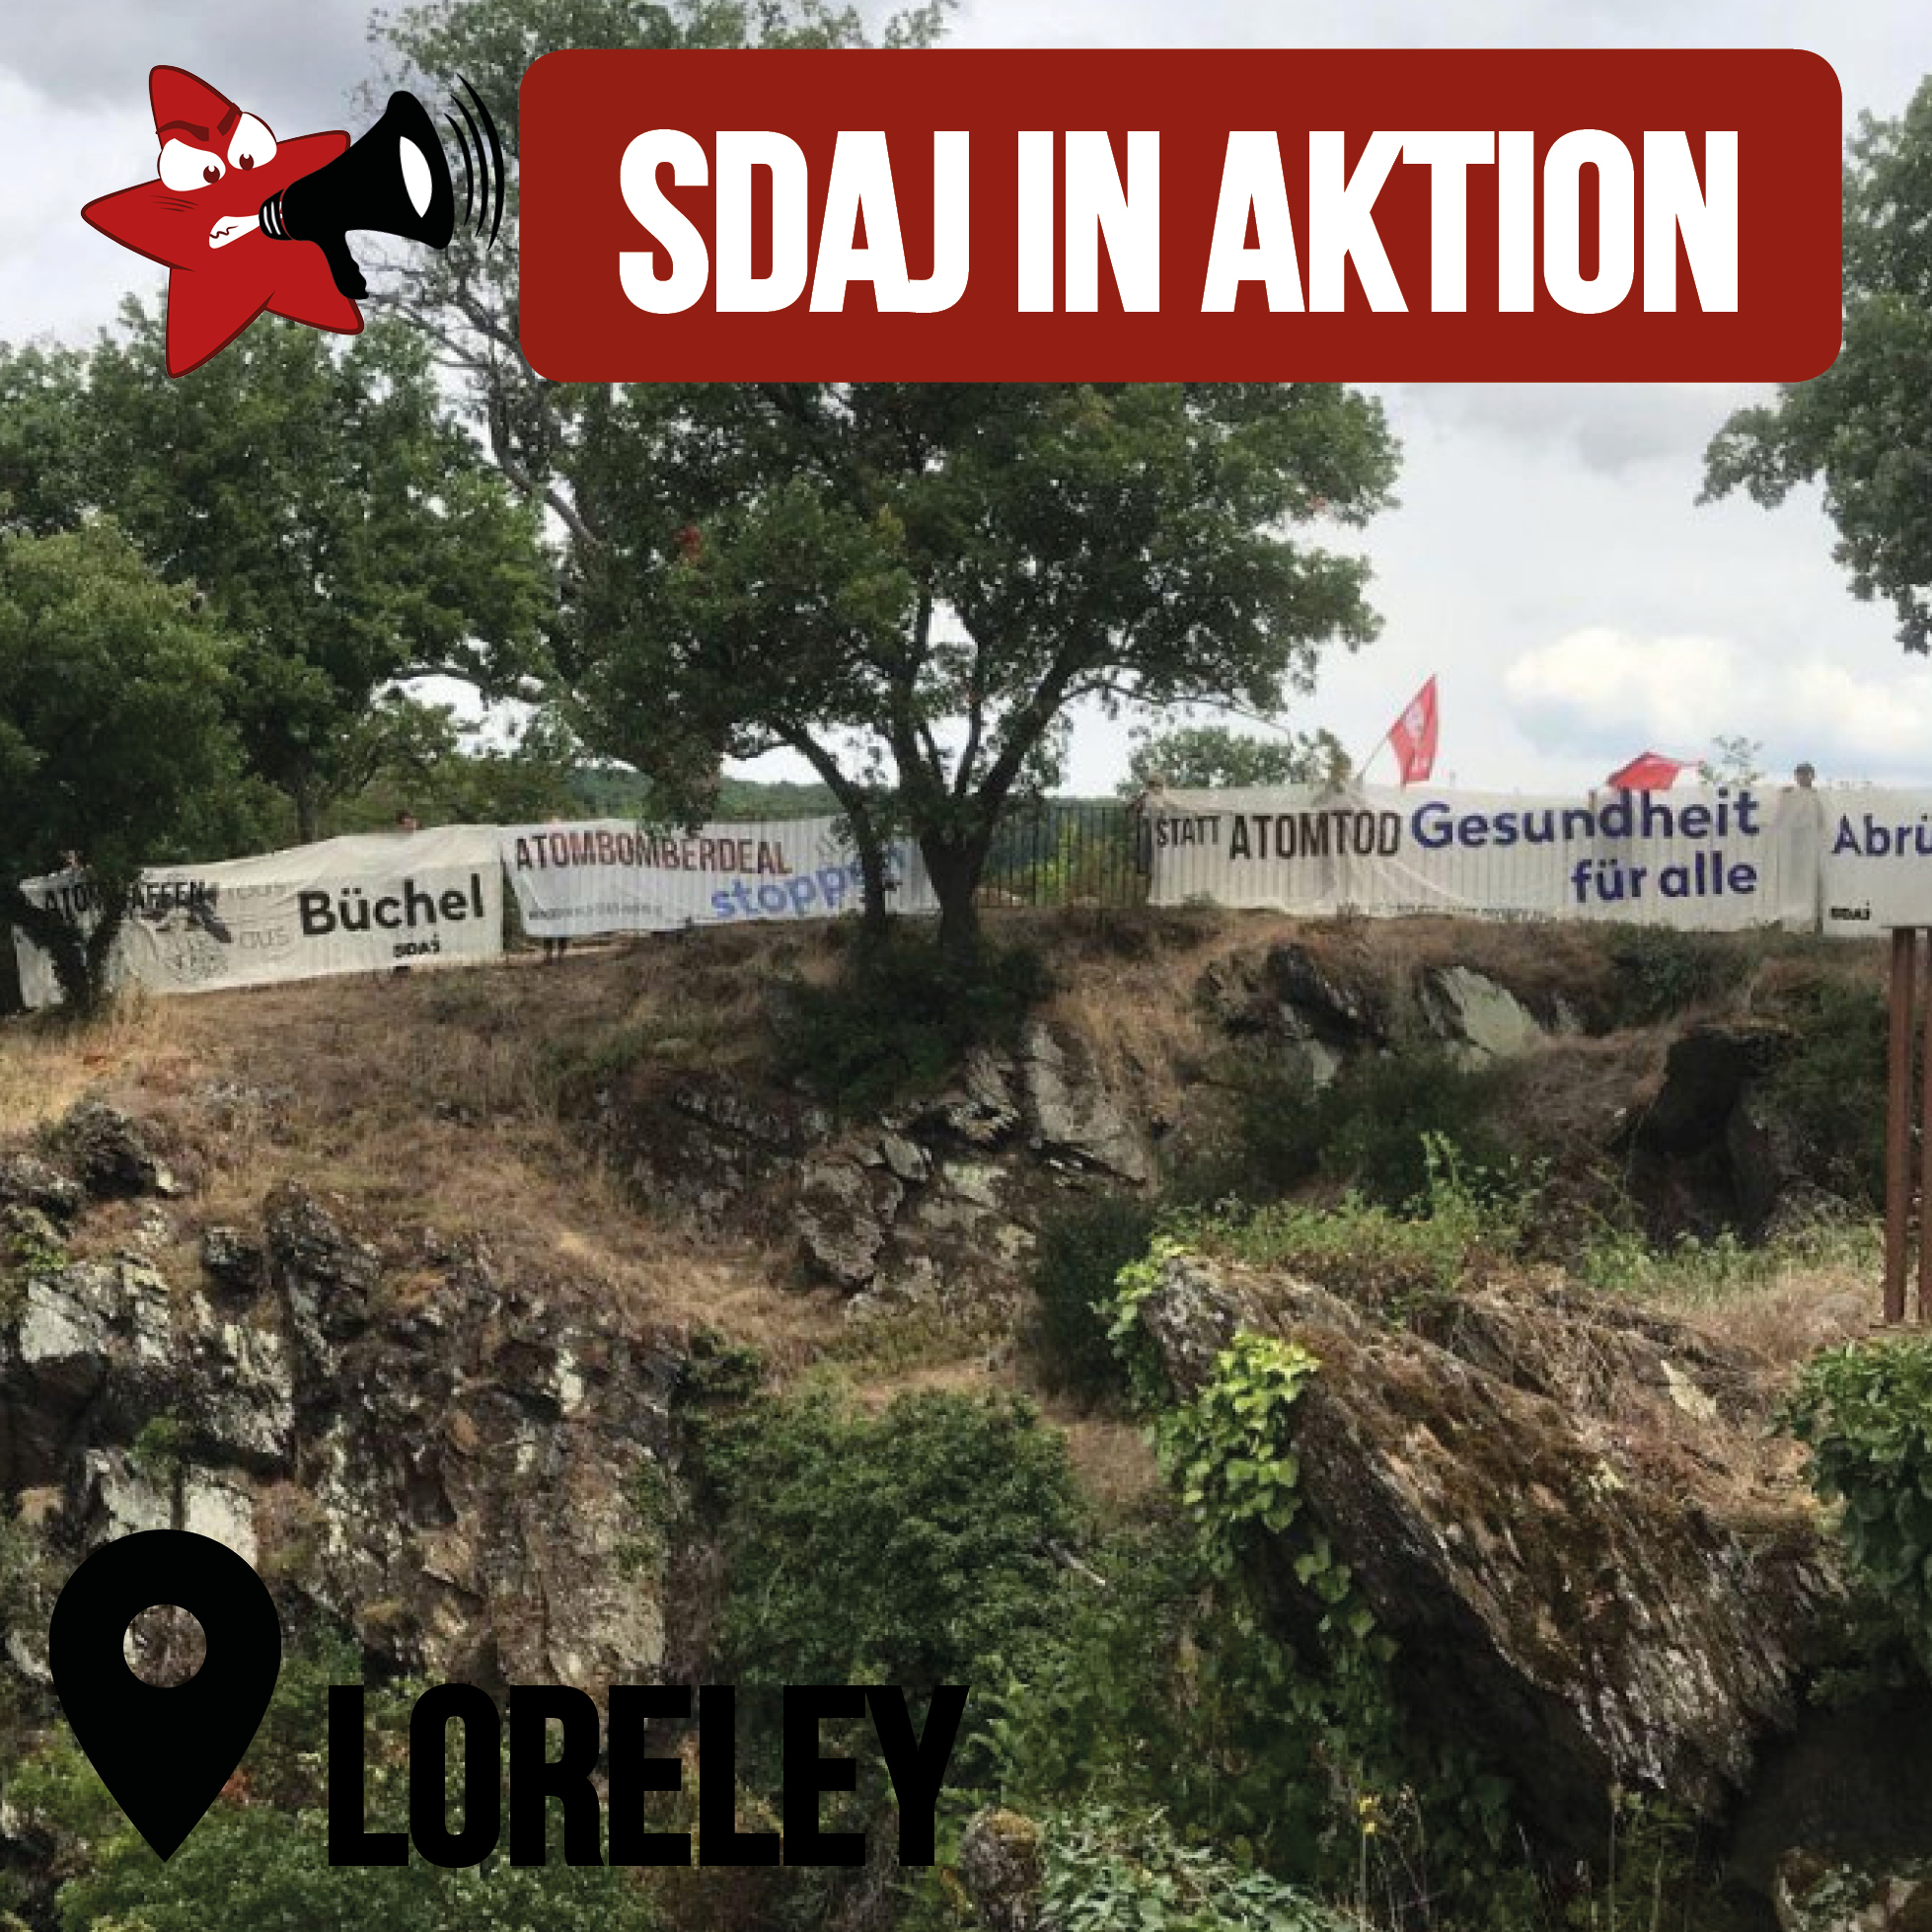 SDAJ in Aktion: Loreley